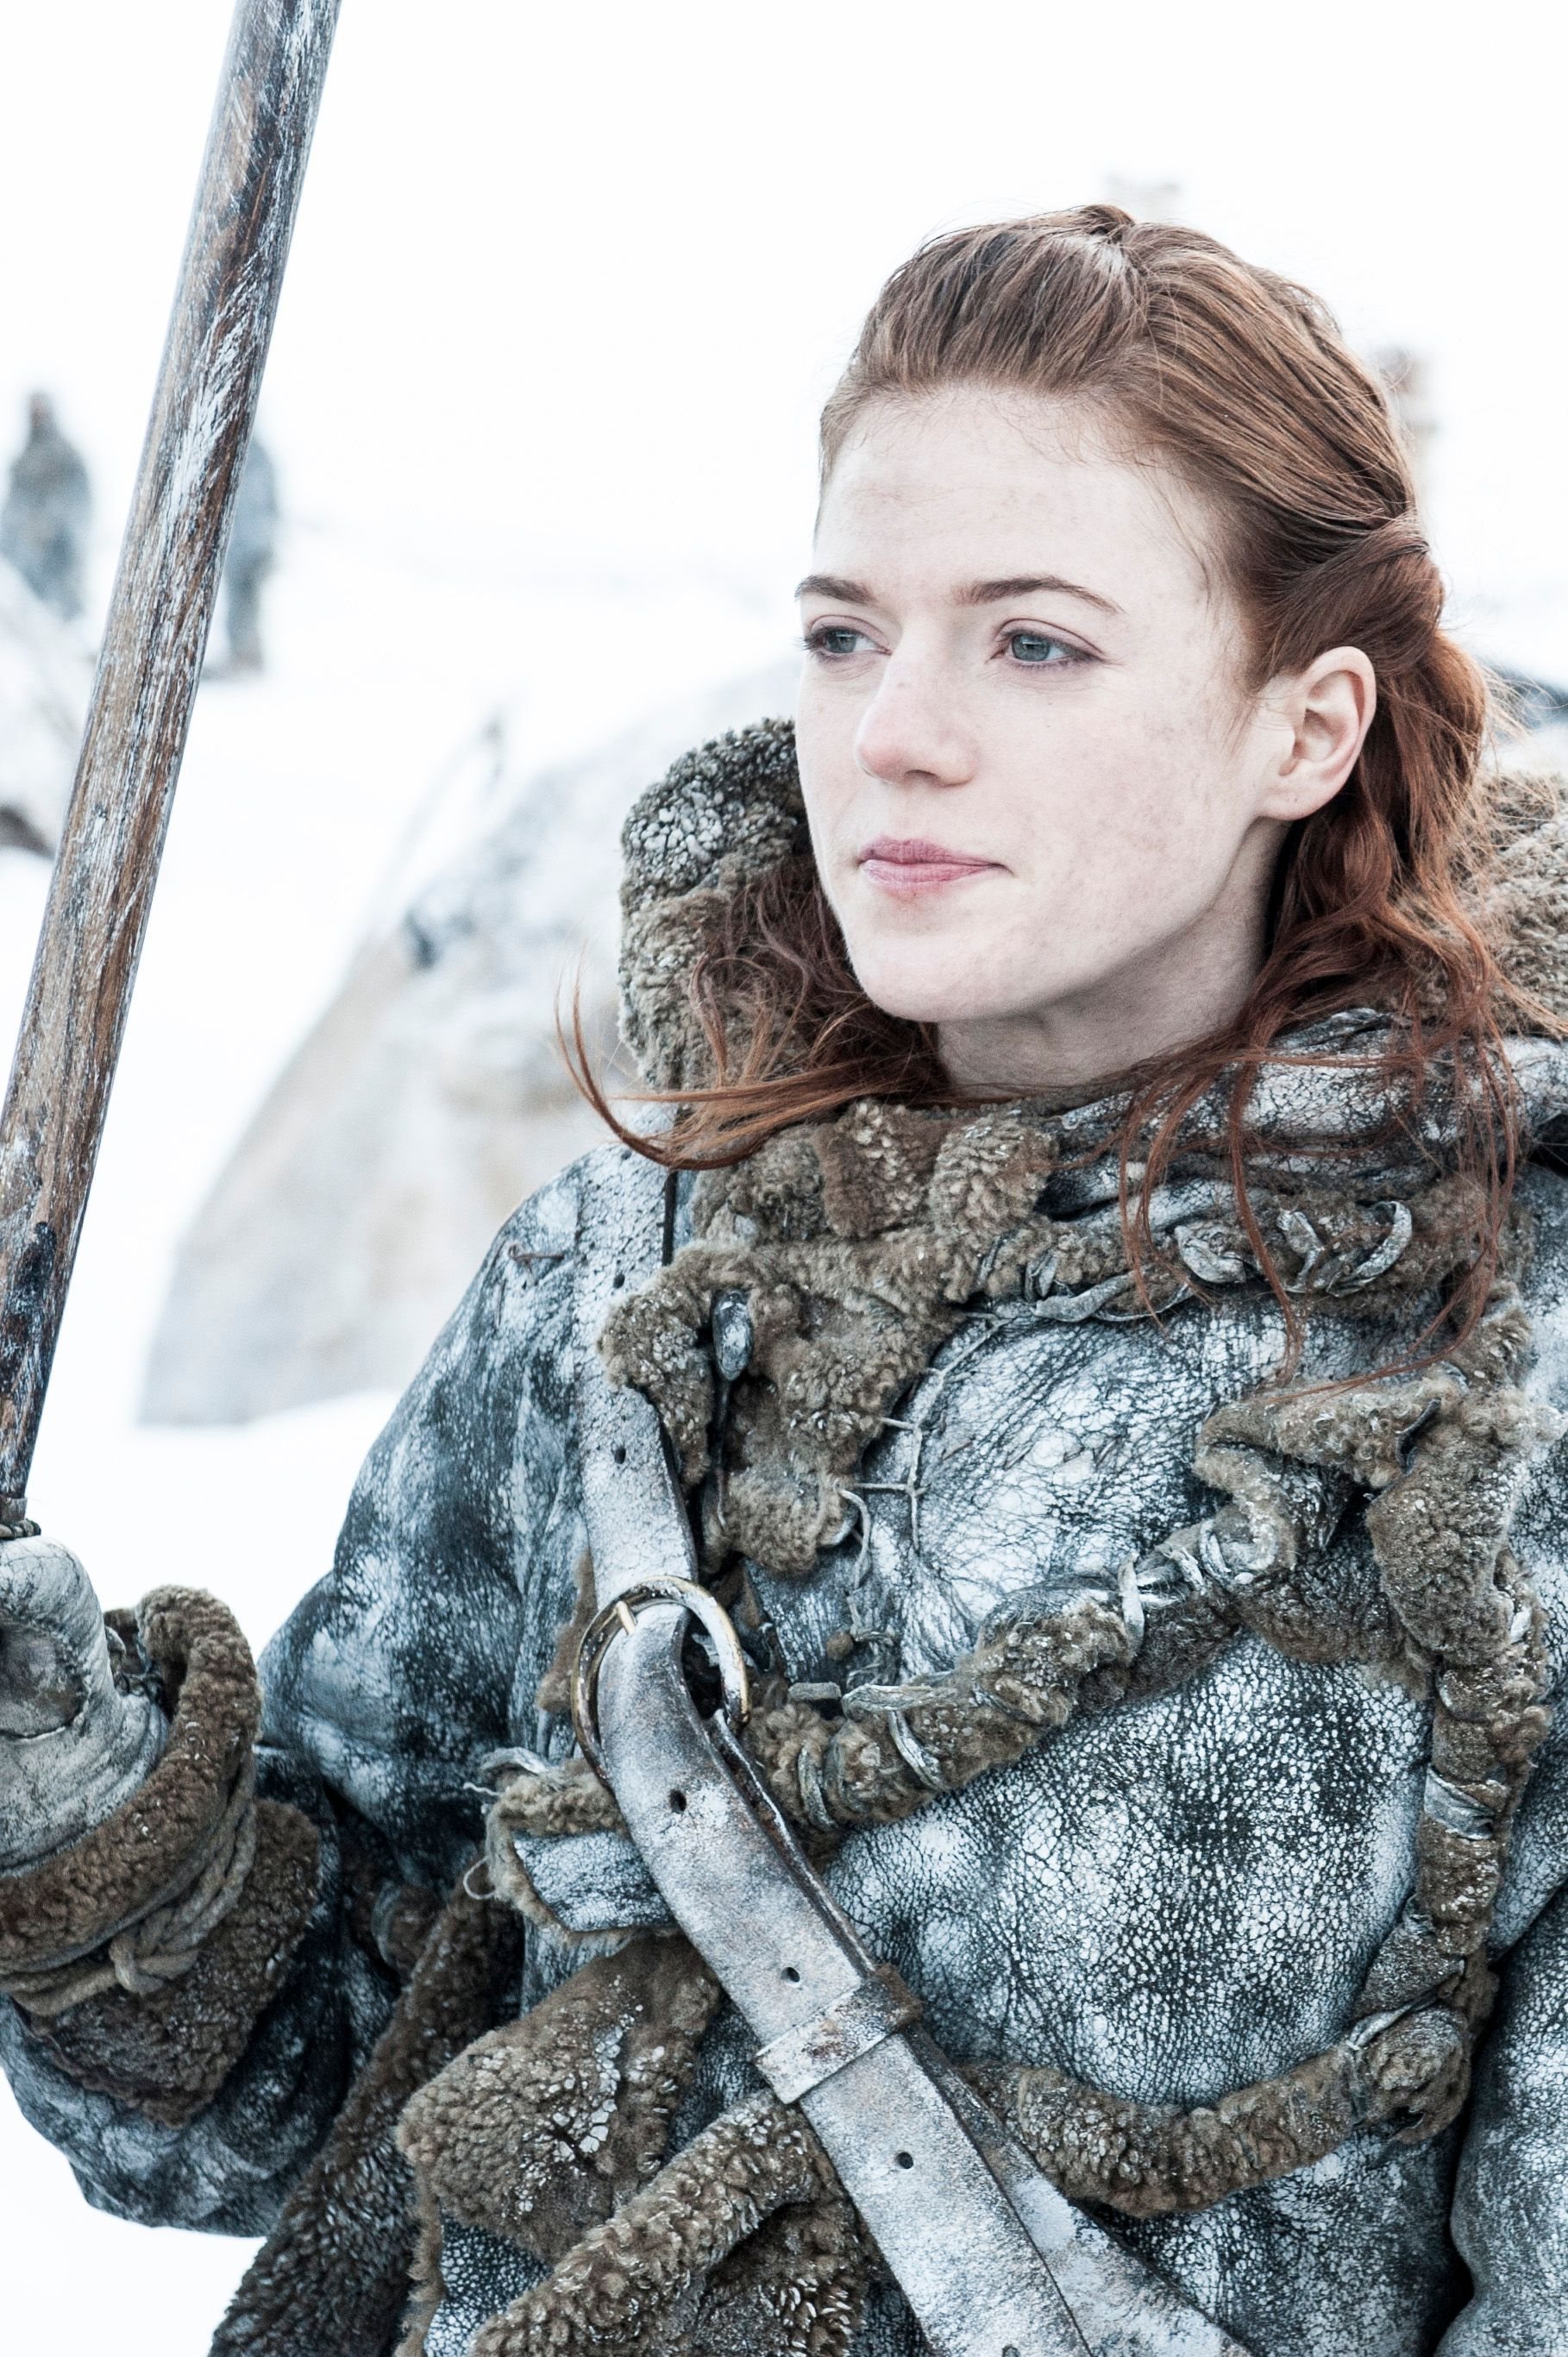 http://cdn.collider.com/wp-content/uploads/game-of-thrones-season-3-rose-leslie.jpg